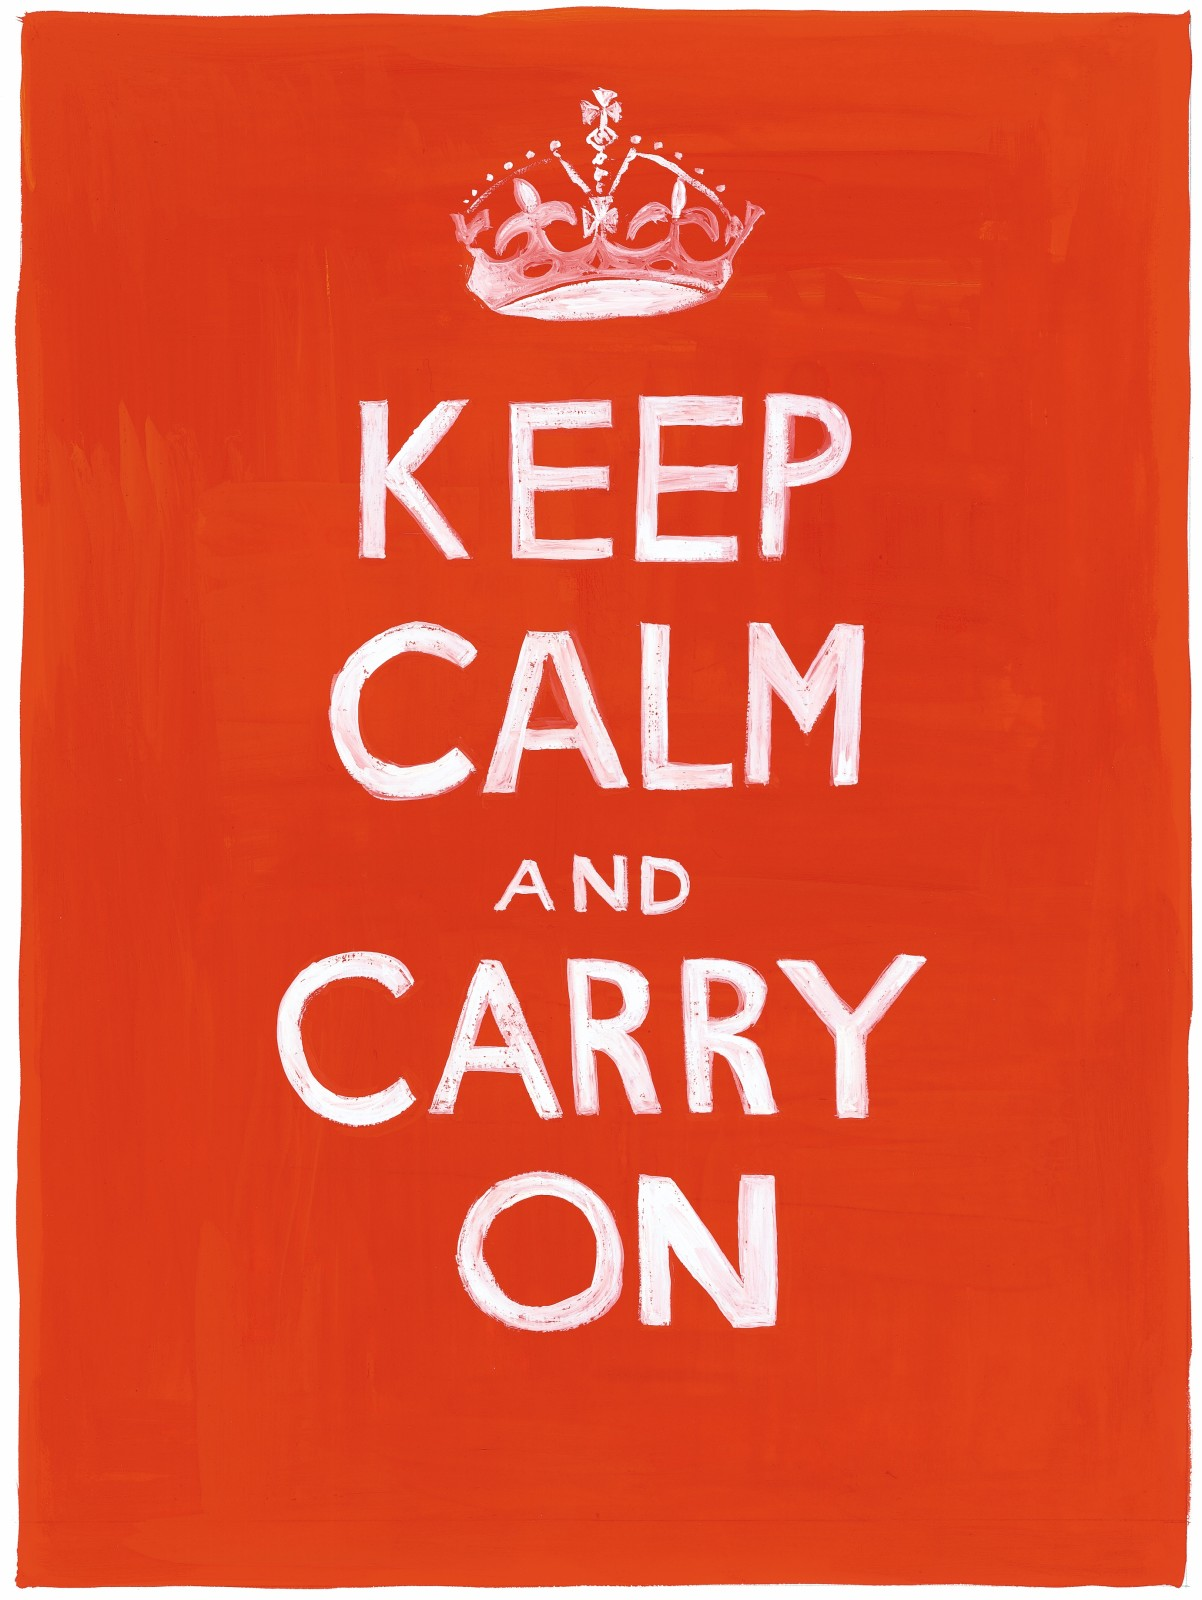 Keep Calm Carry On, 2008